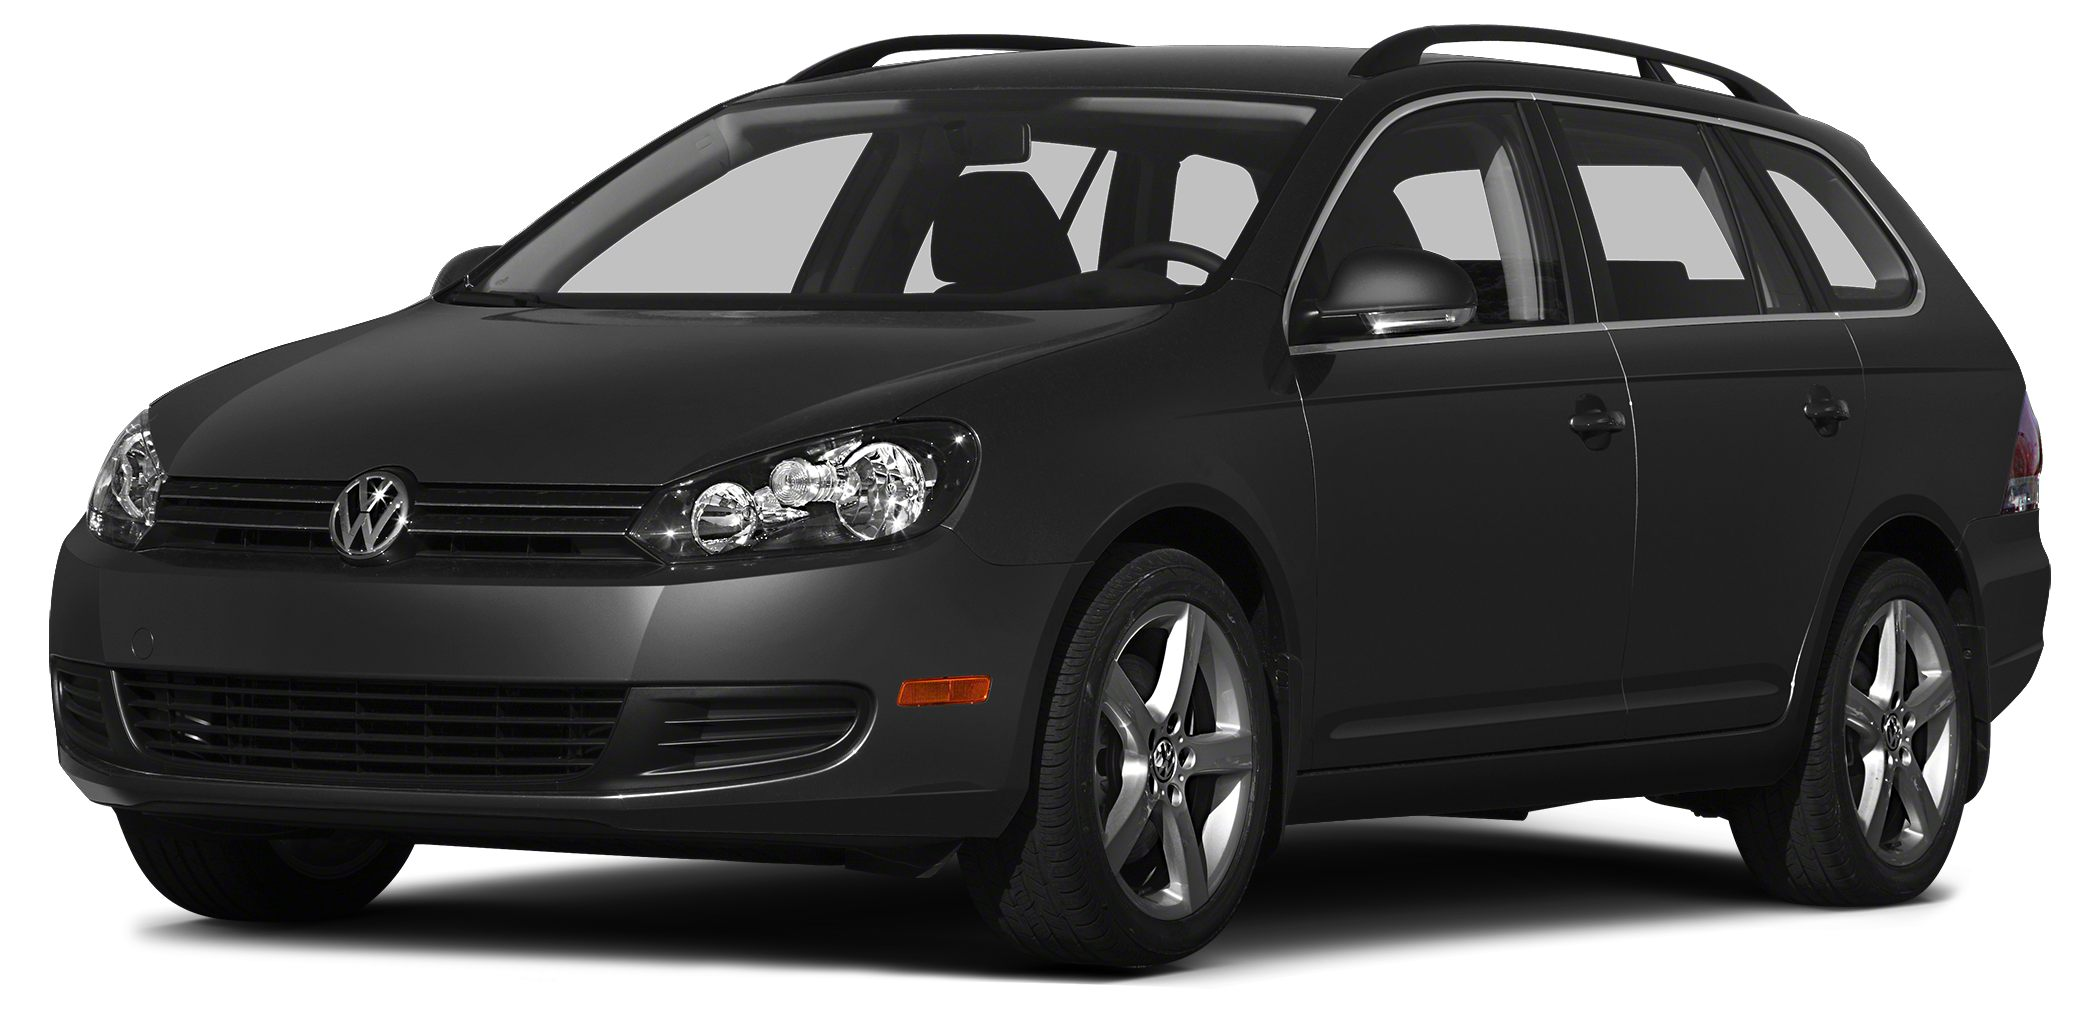 2014 Volkswagen Jetta SportWagen  25L 5-Cylinder DOHC 6-Speed Automatic with Tiptronic and Blac